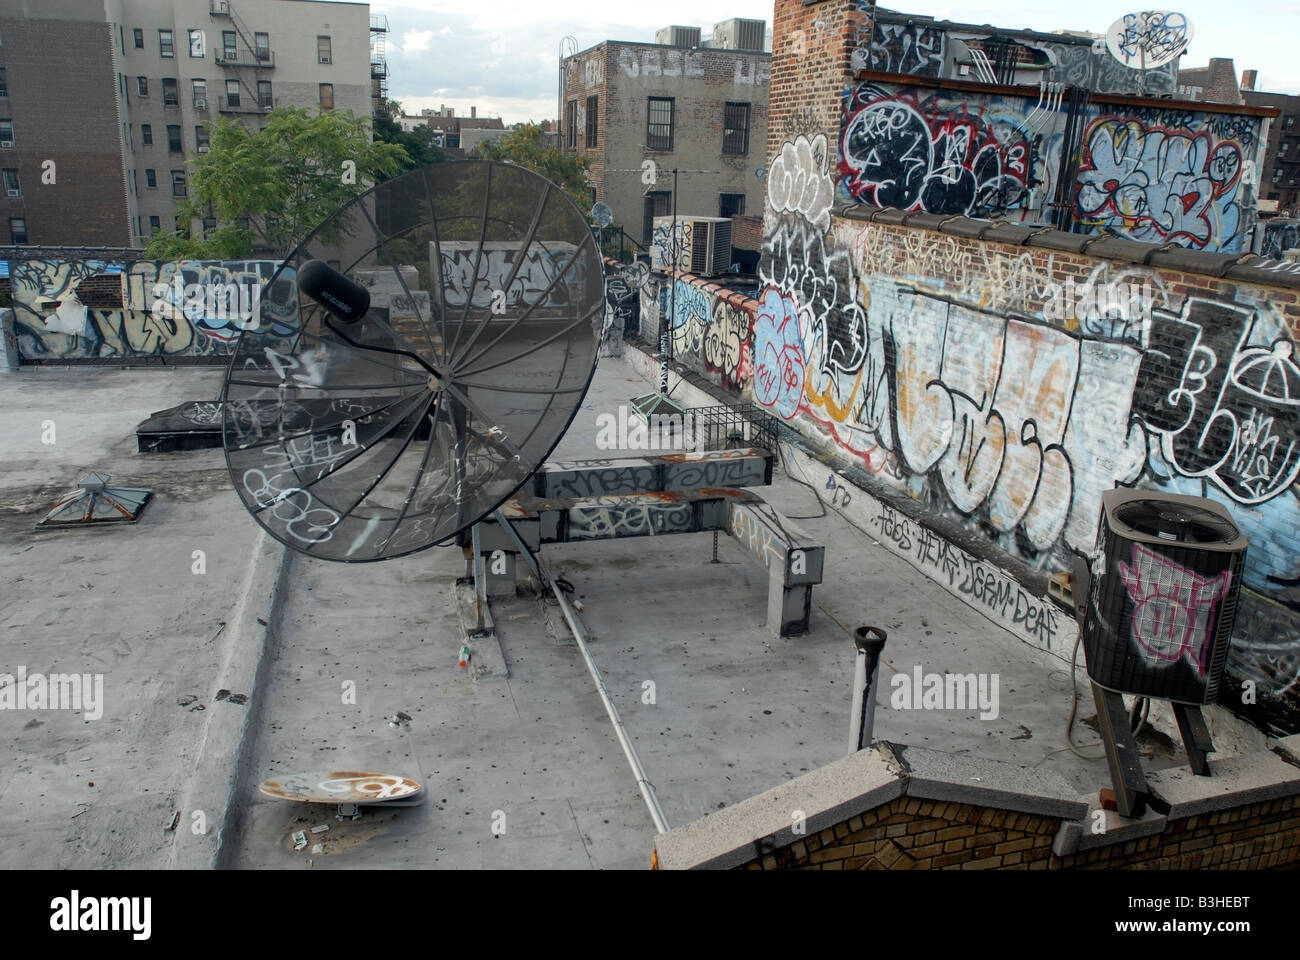 Graffiti and other vandalism on a rooftop in the Jackson Heights neighborhood of New York in the borough of Queens - Stock Image